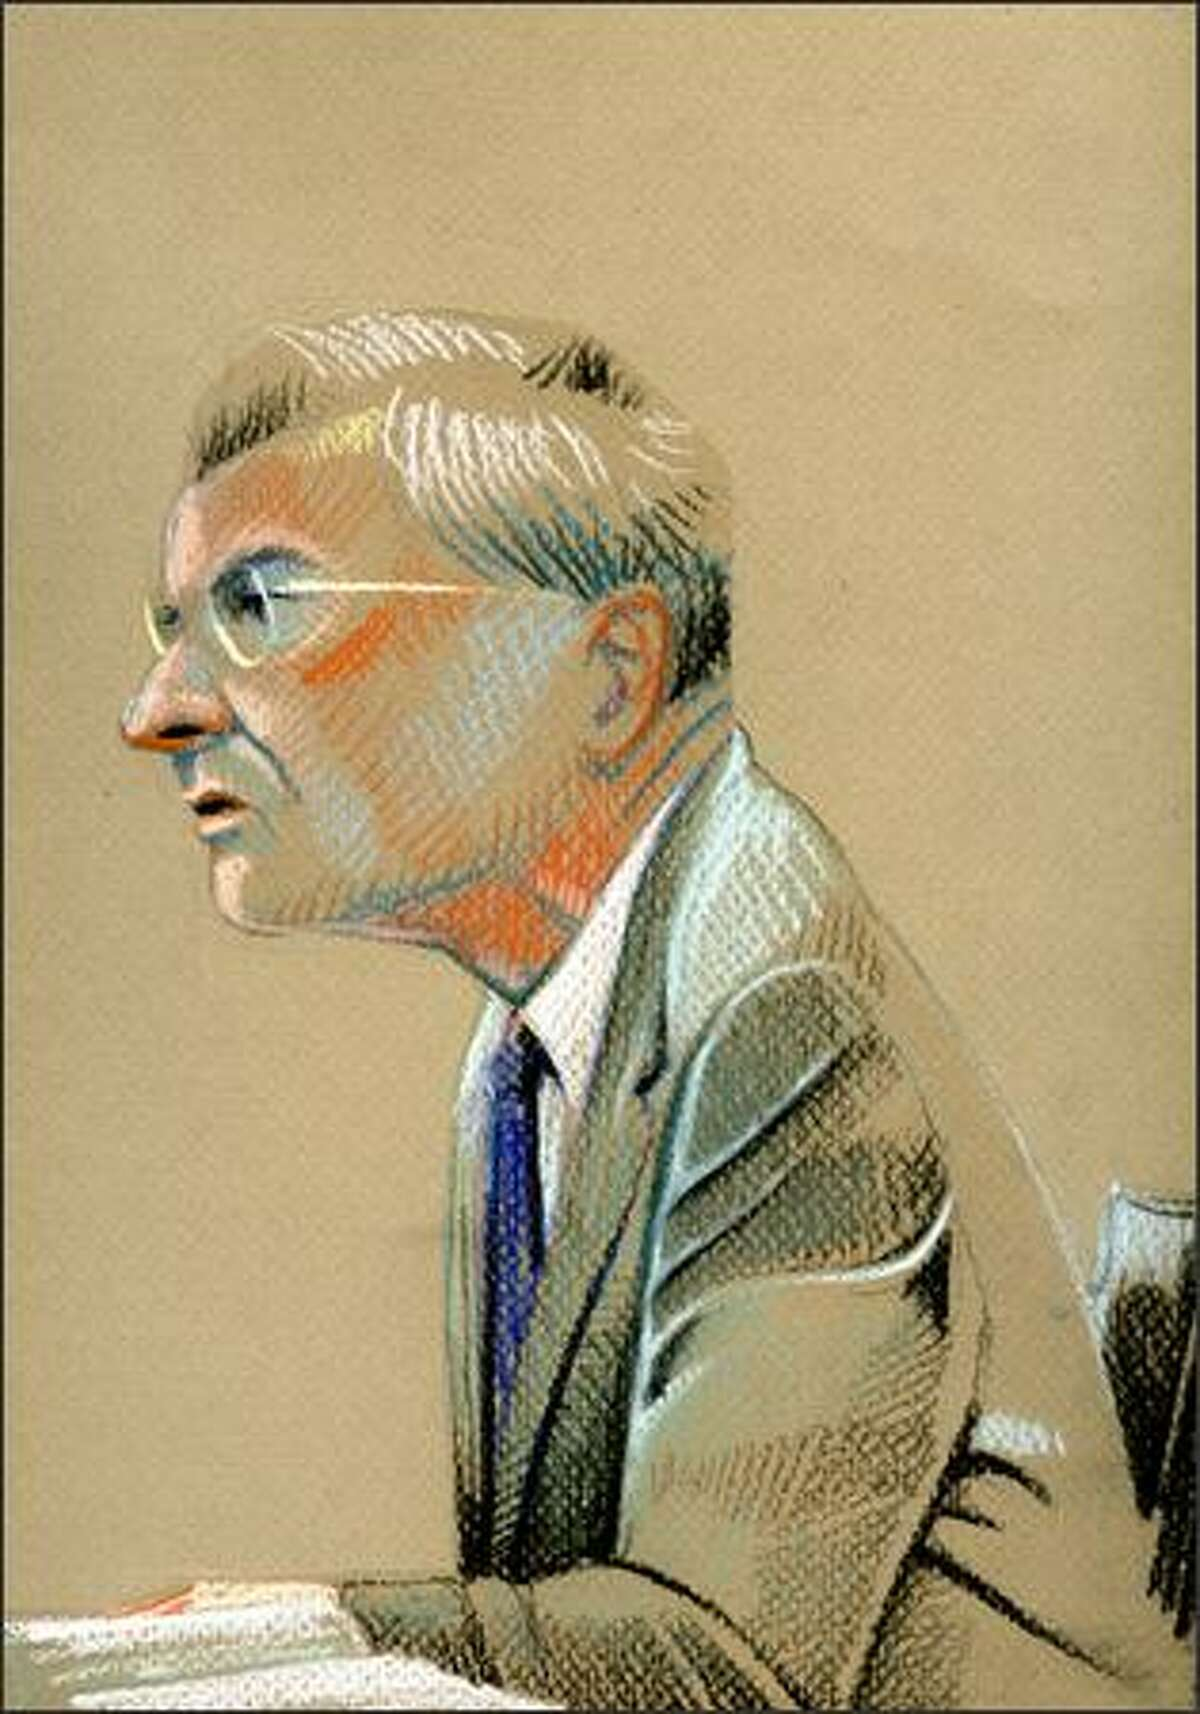 Sports economist Andrew Zimbalist on the stand Tuesday.